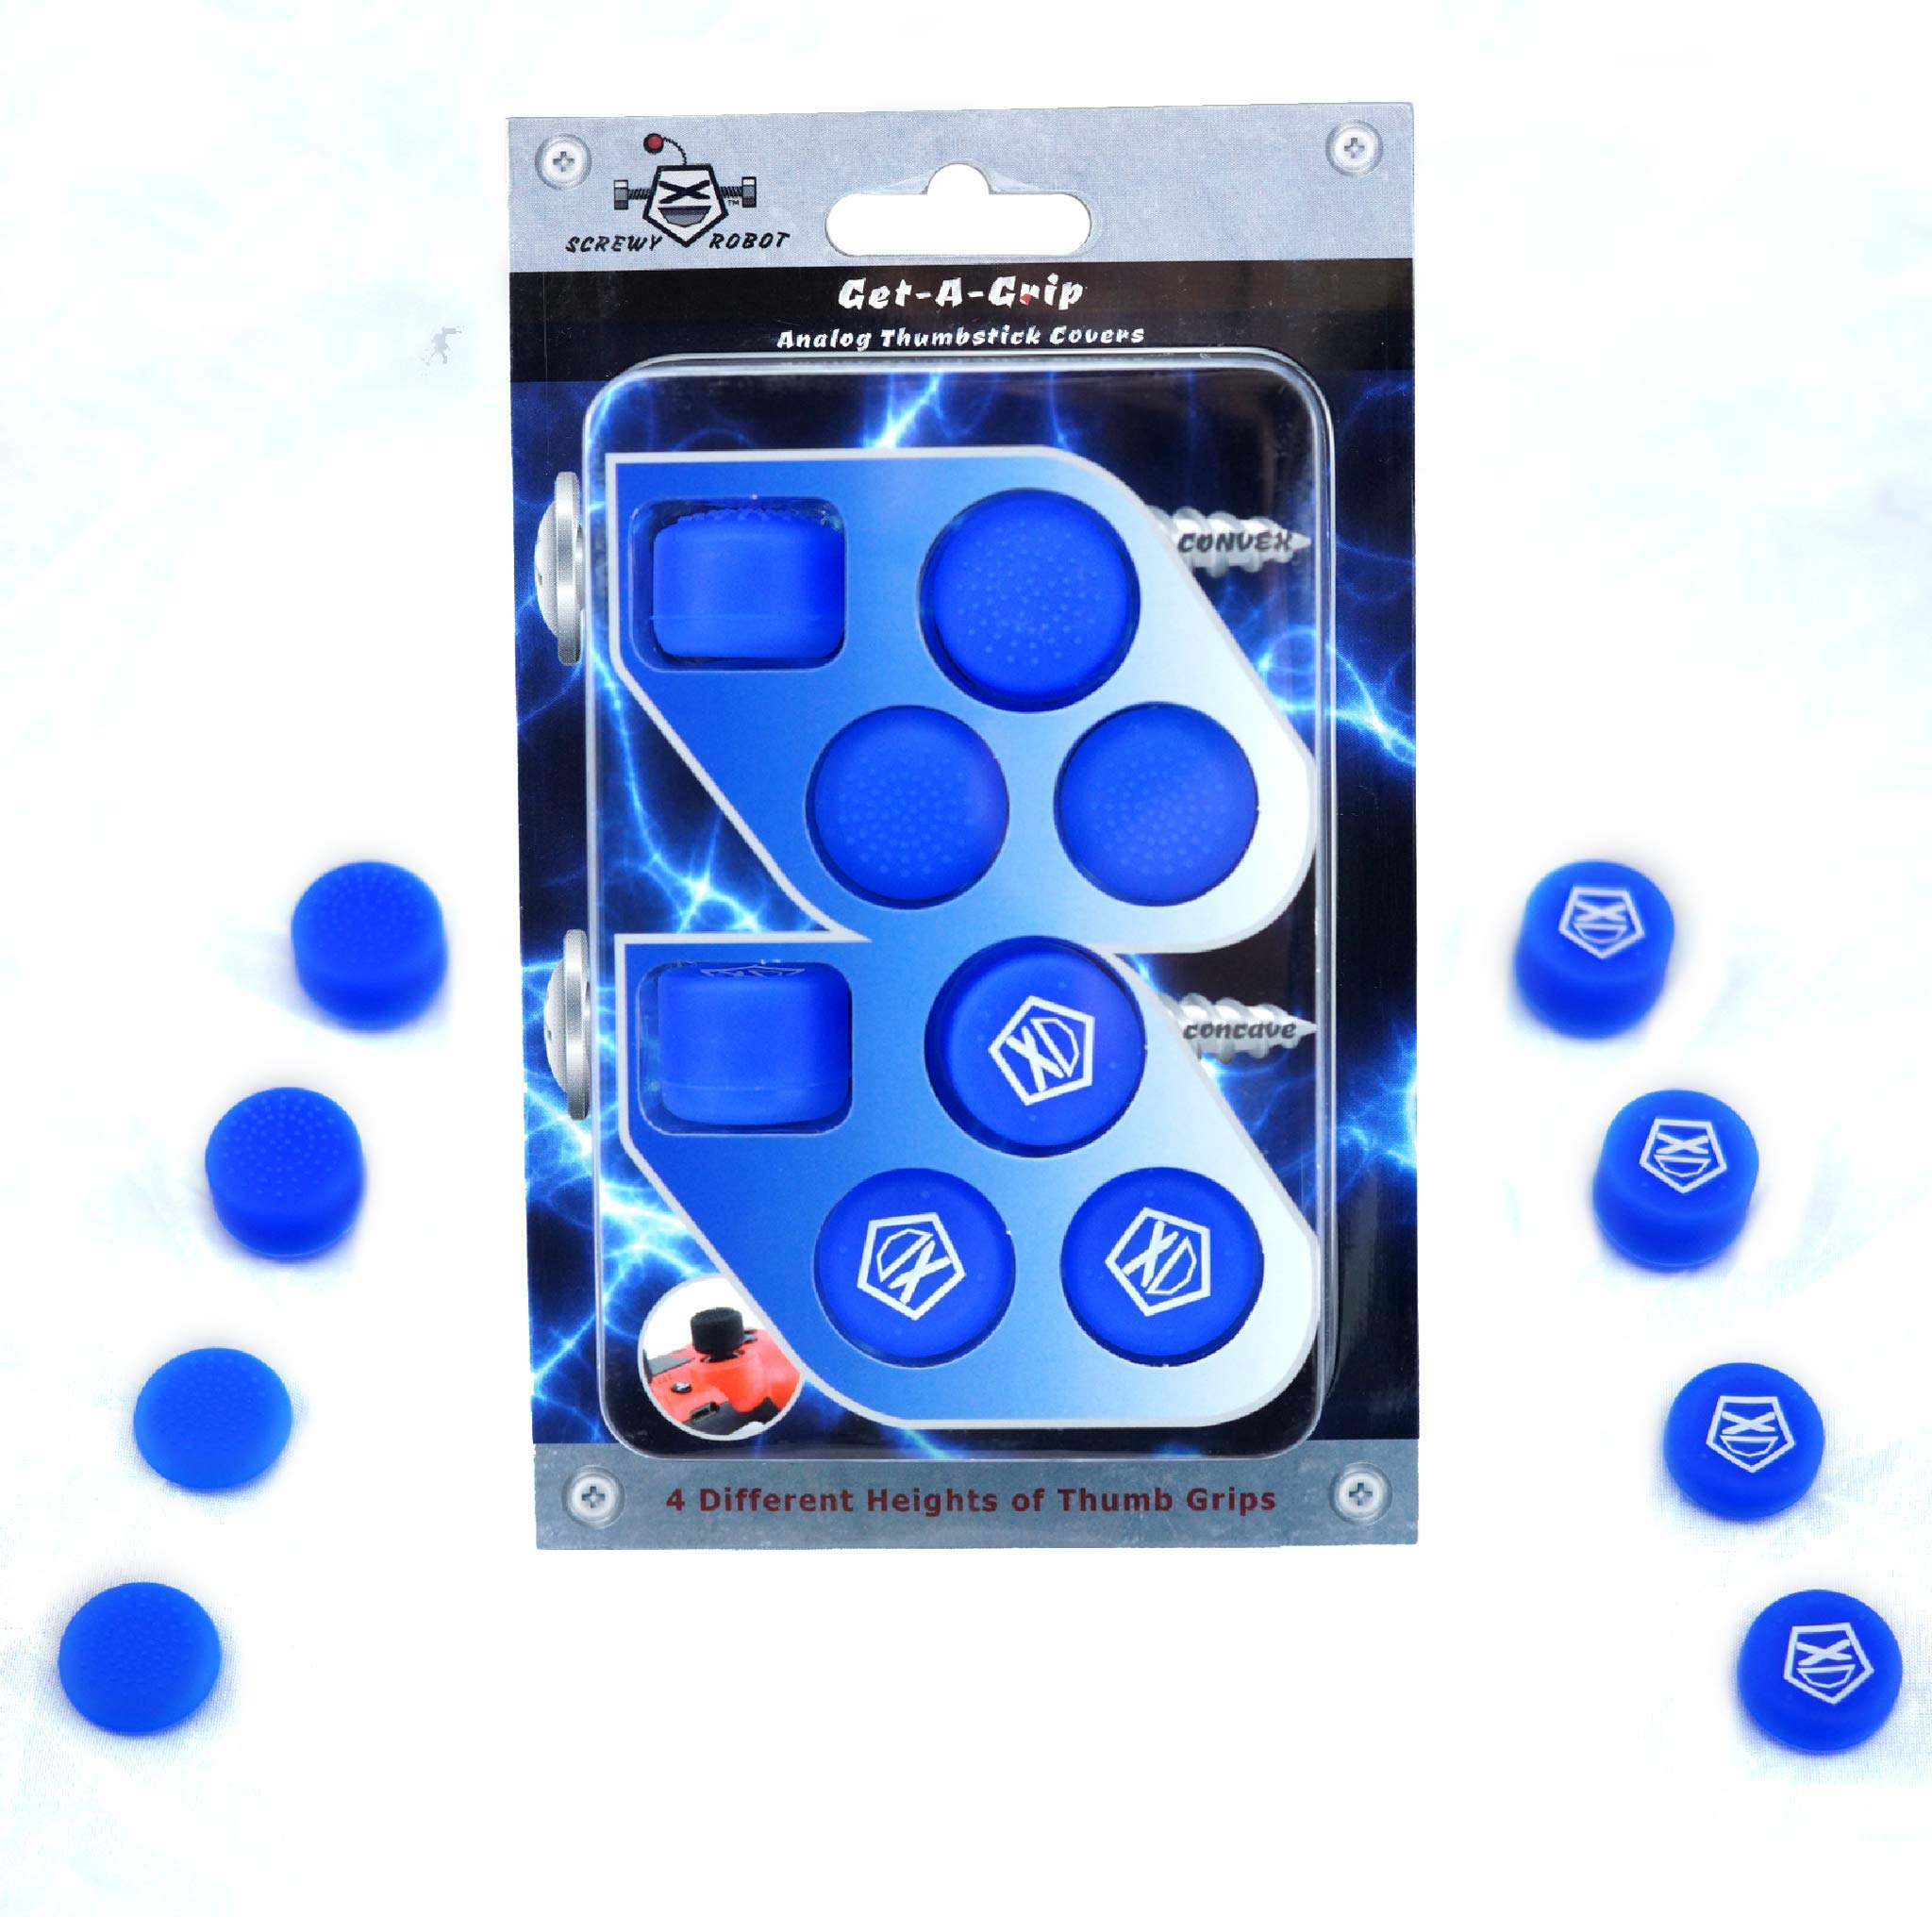 Get-A-Grip Analog Thumbstick Grip Covers for PS4/PS3 by ScrewyRobot (Blue) by ScrewyRobot